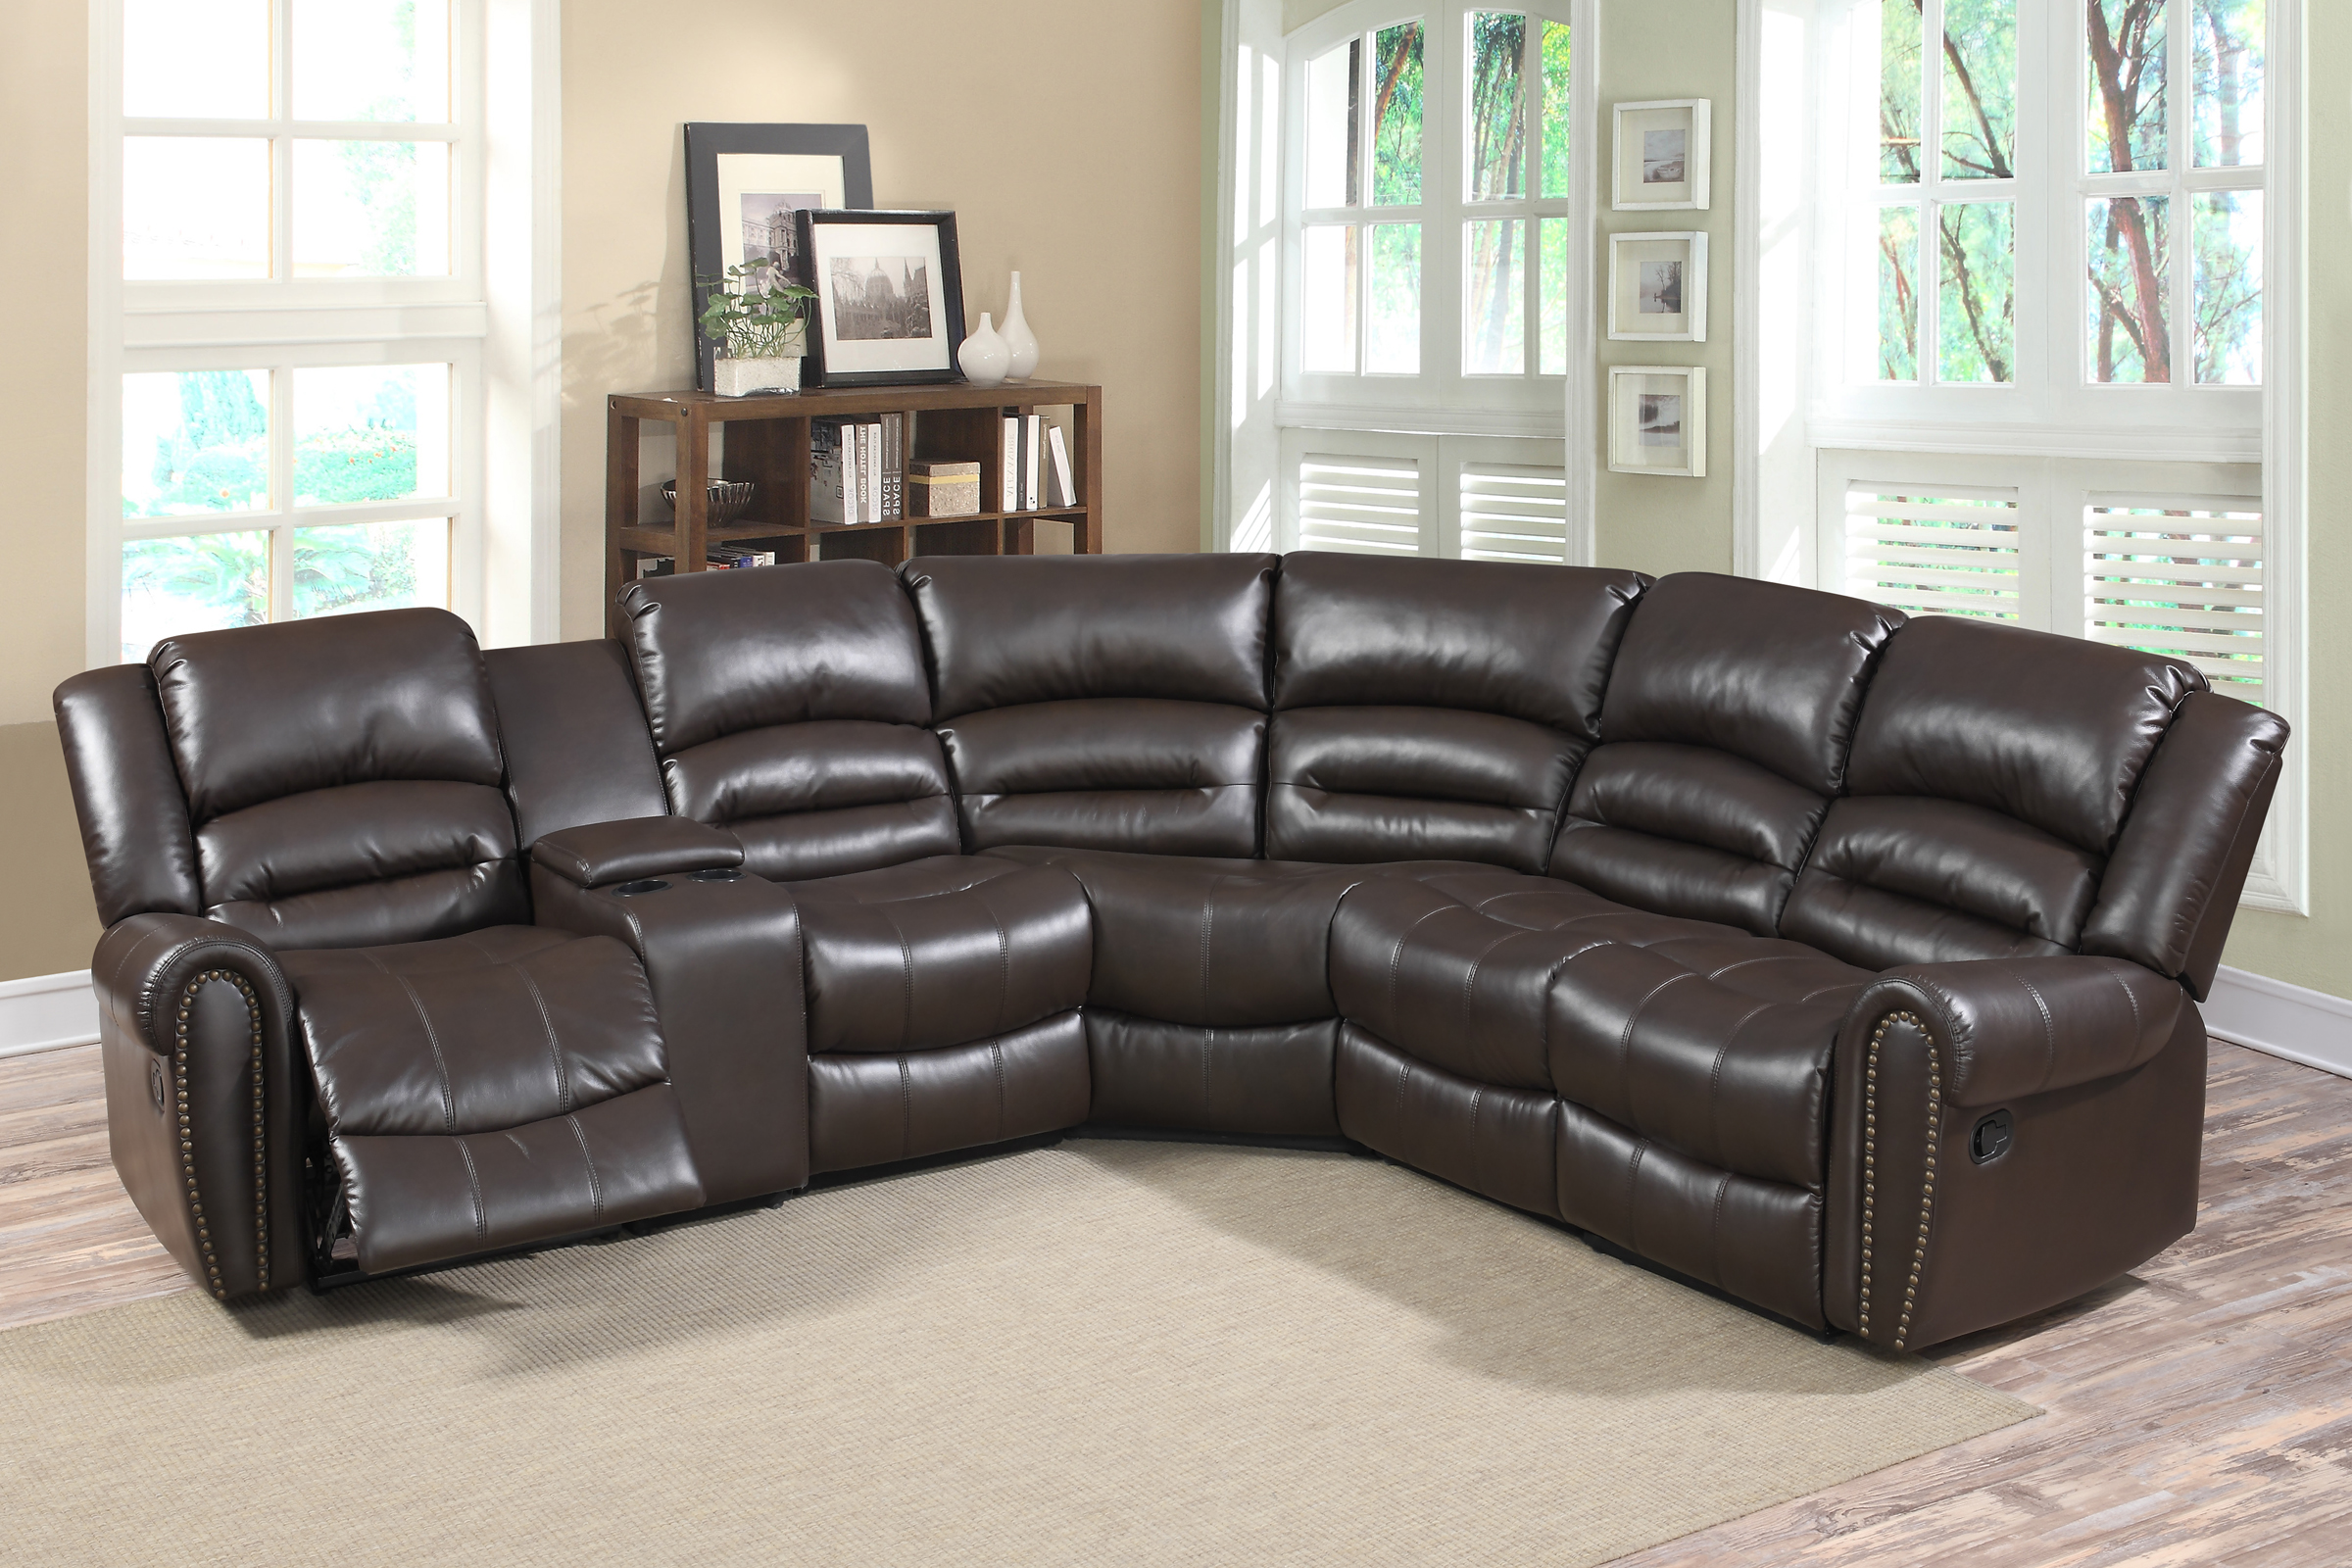 Grace 6 Pc Leather Reclining Sectional Sofa Set With Storage Console, Dark  Brown